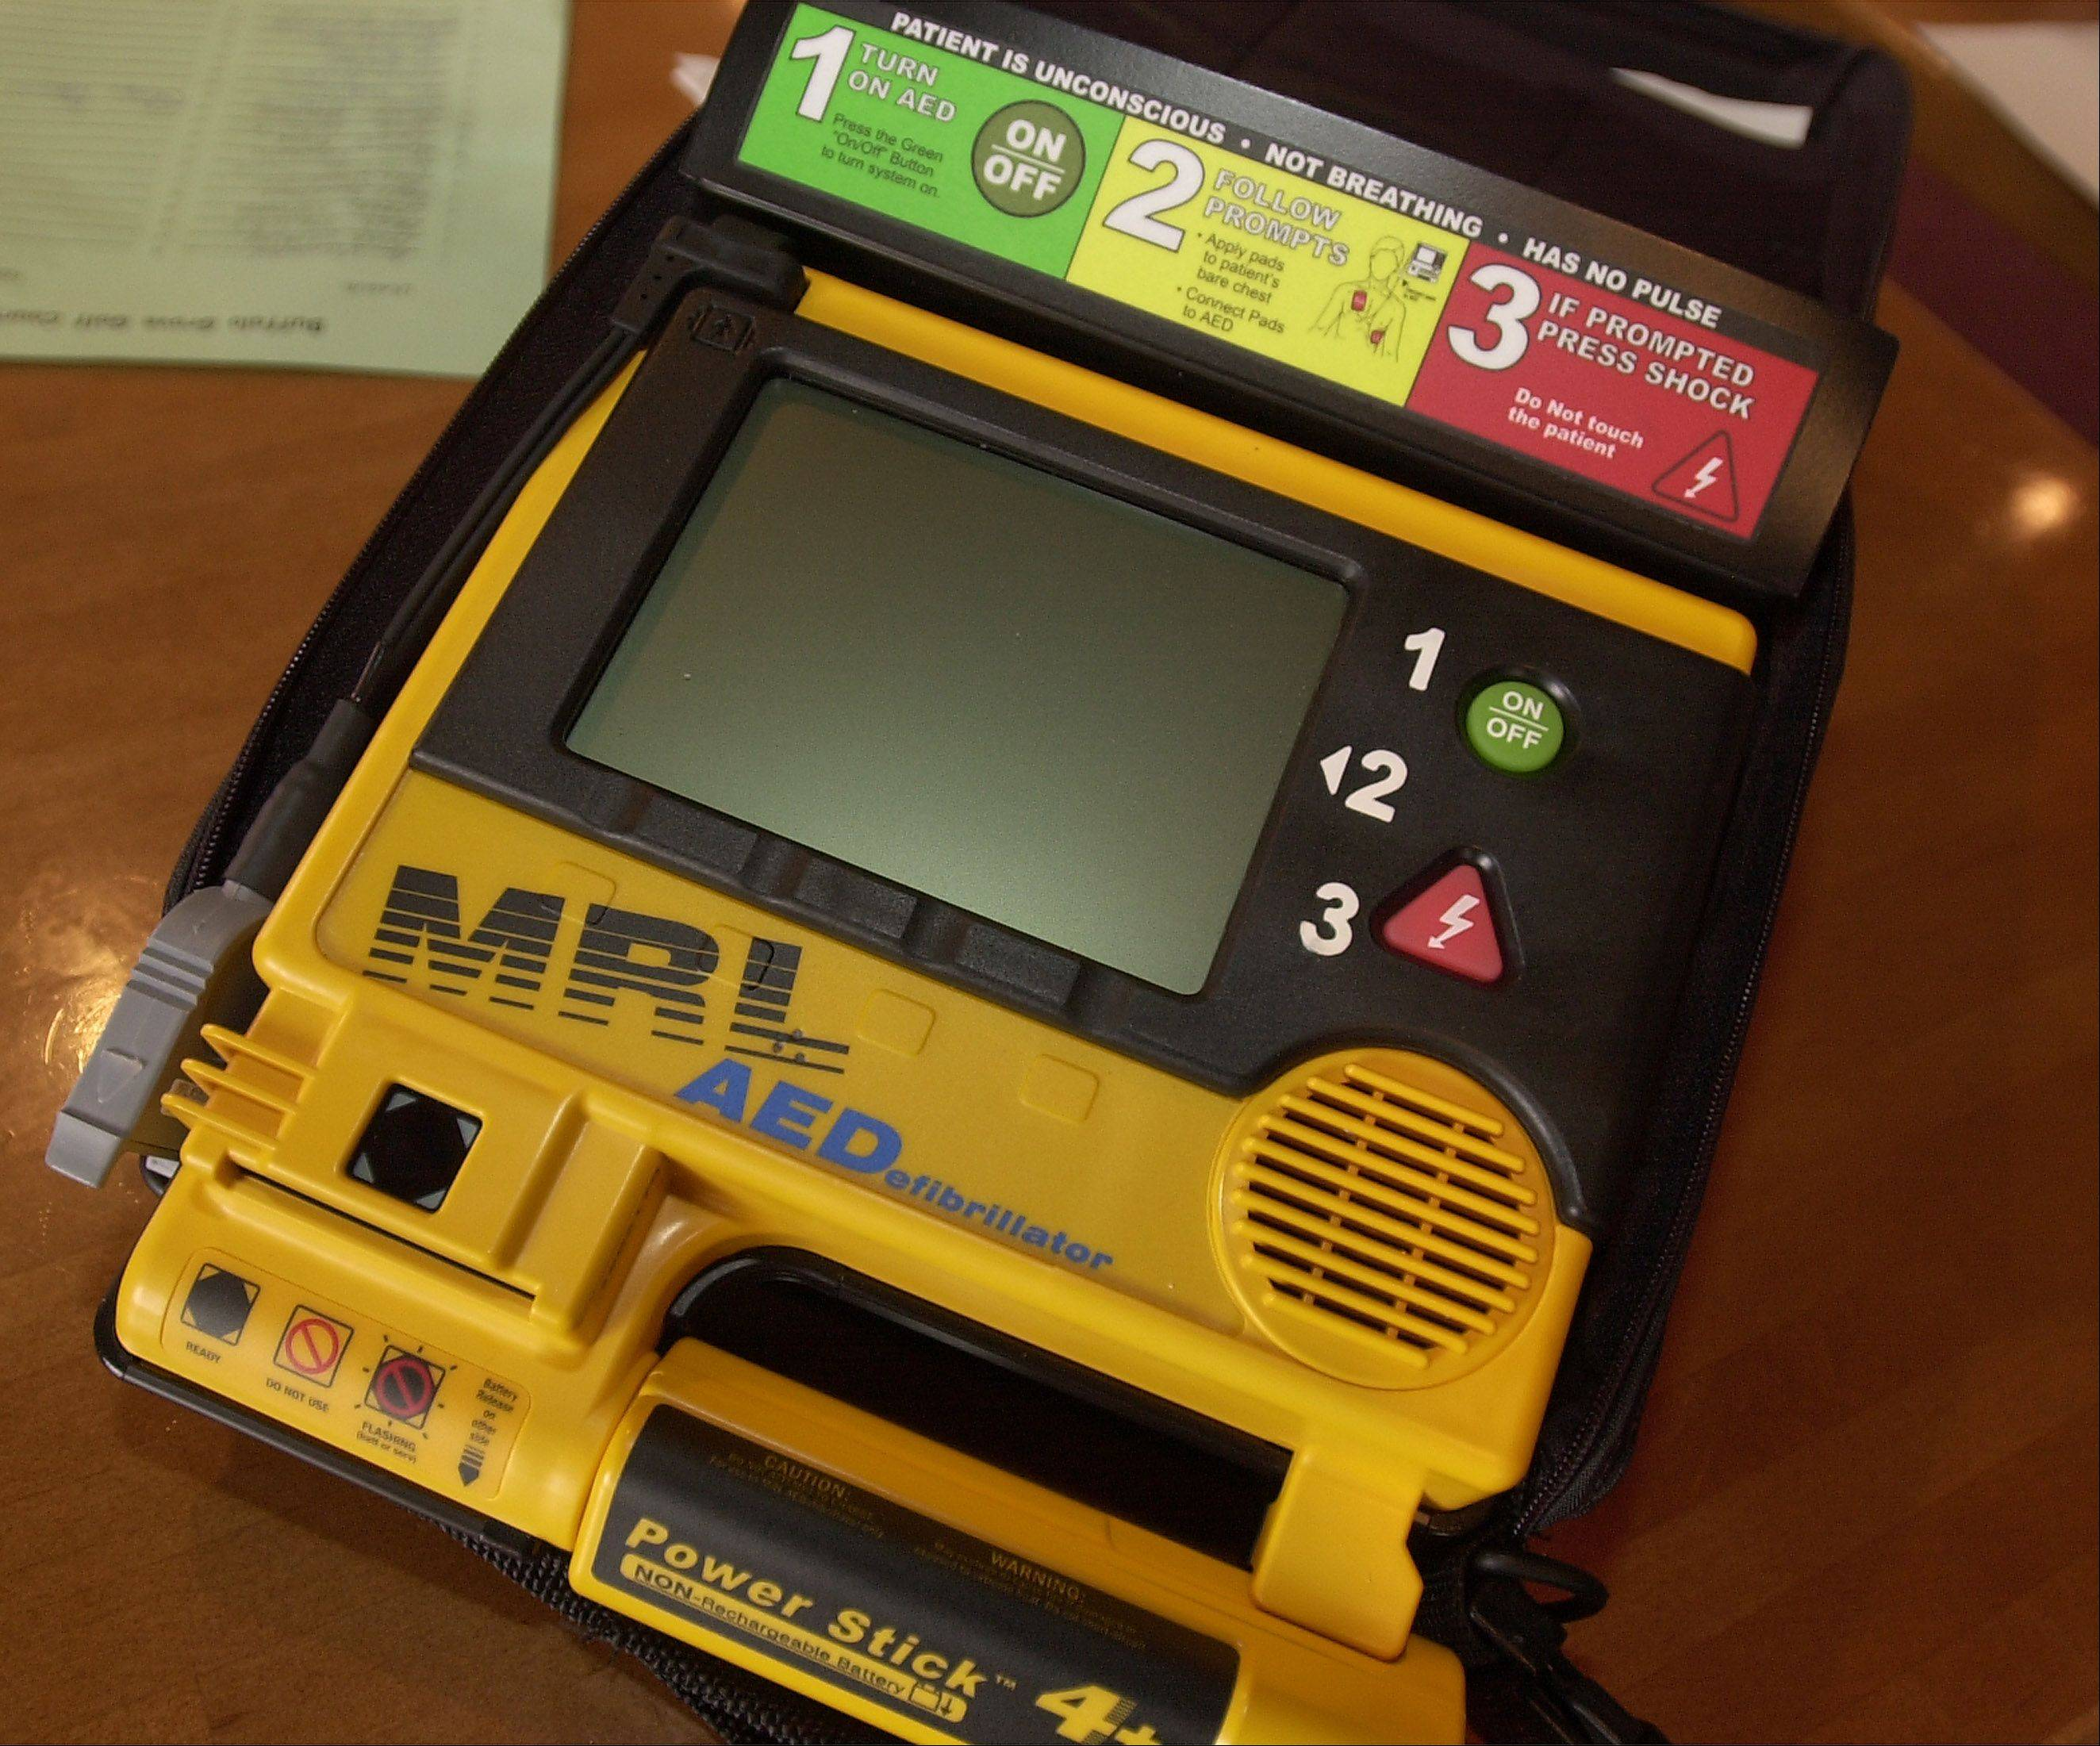 Automated external defibrillators like this one have become cheaper and easier to use. Now Metra will install defibrillators on every train.